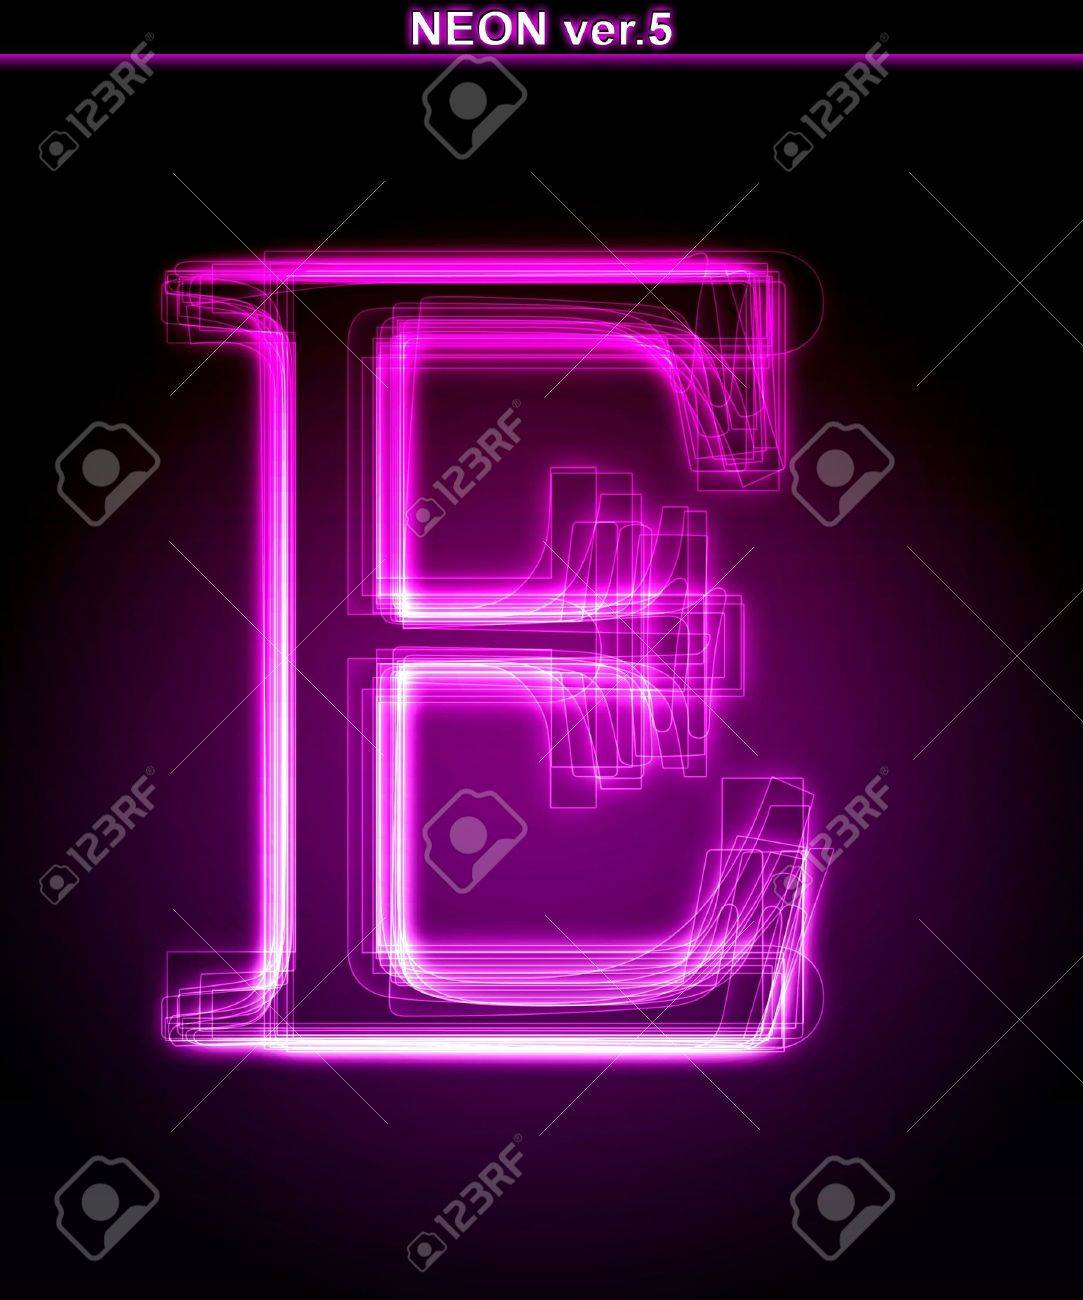 Background image e - Glowing Neon Letter On Black Background Letter E Full Font In Portfolio